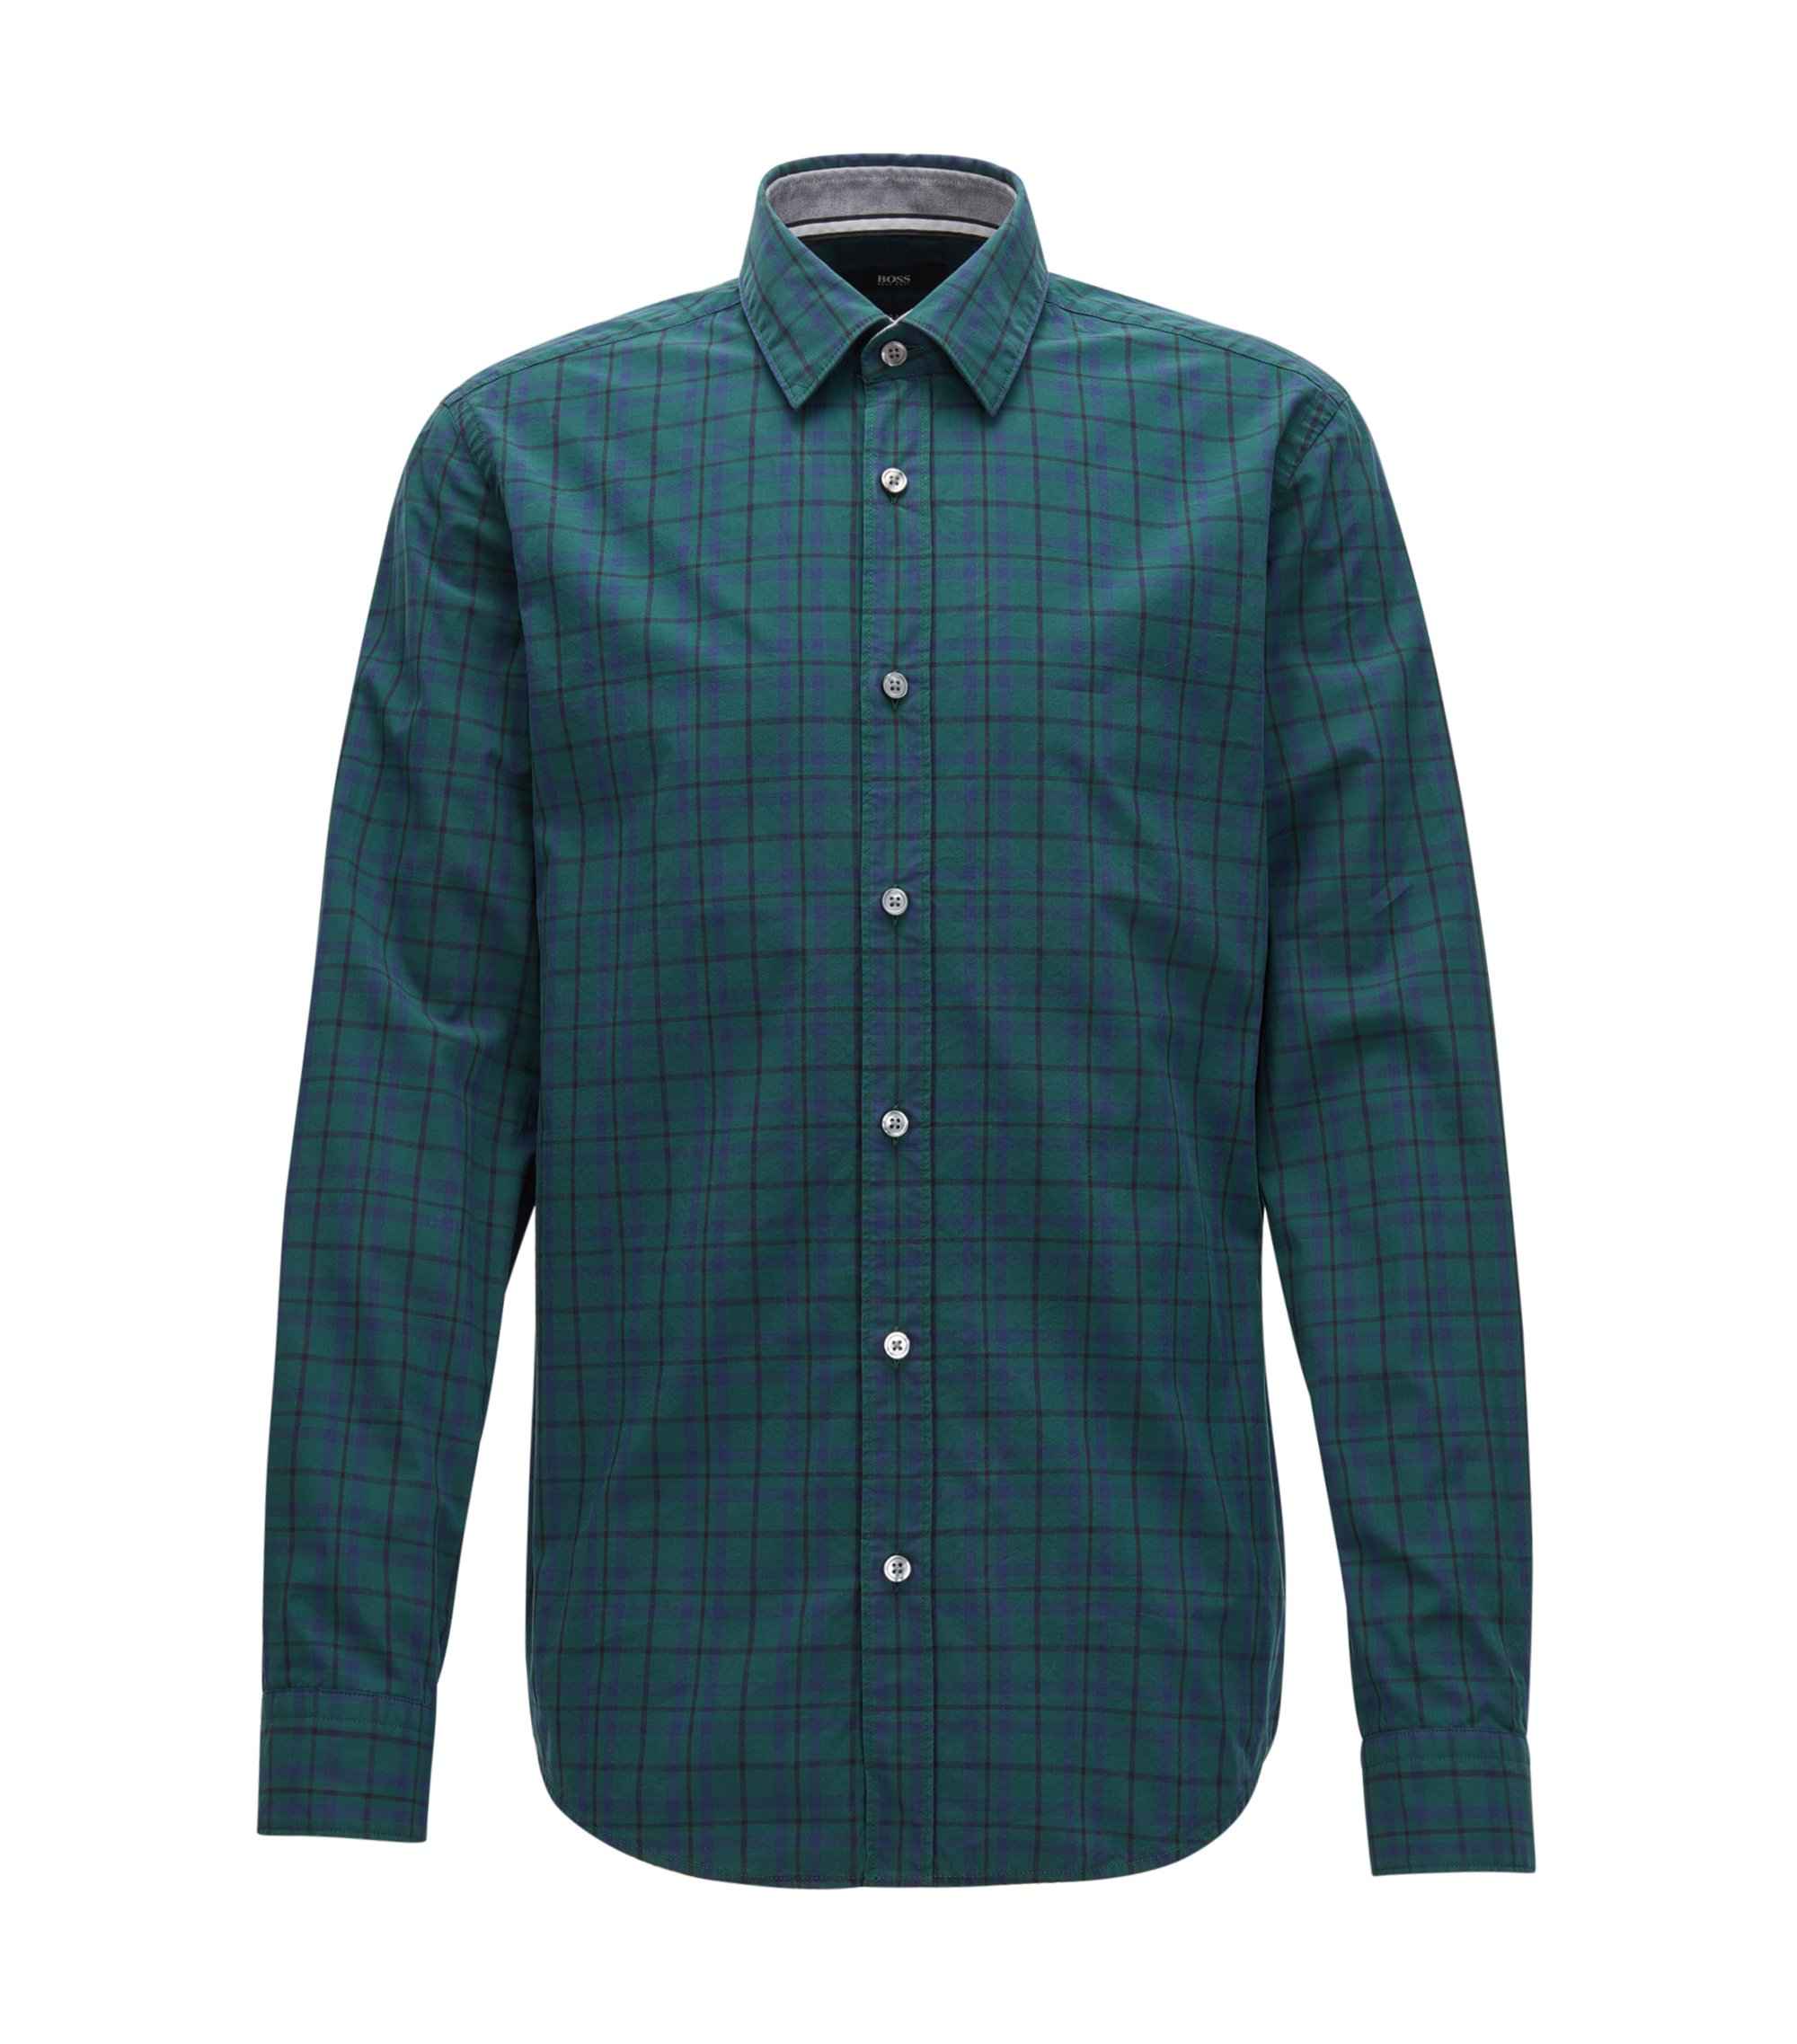 Camicia a quadri slim fit in puro cotone Oxford, Verde scuro